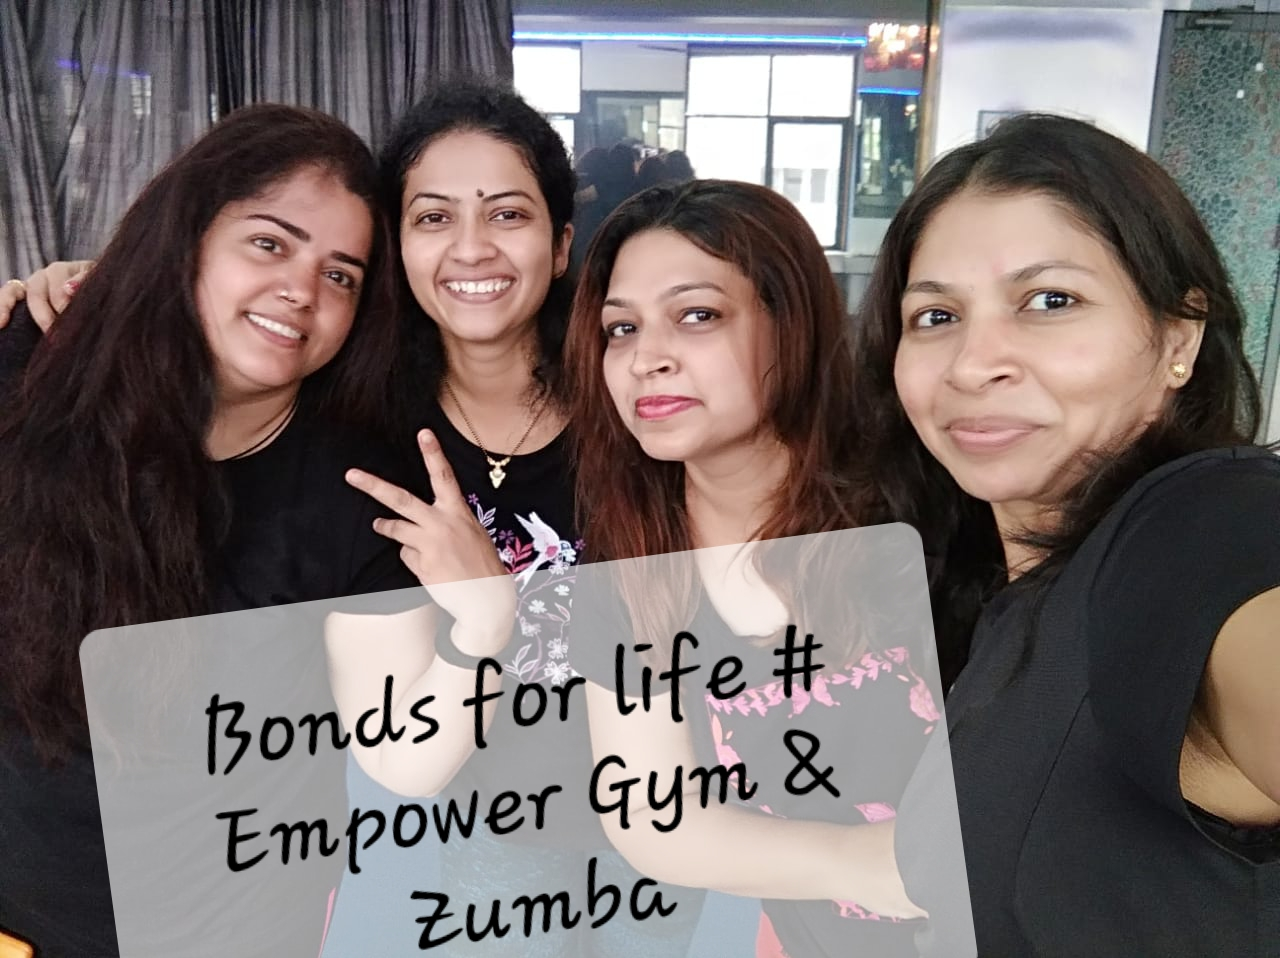 zumba center in kondhawa